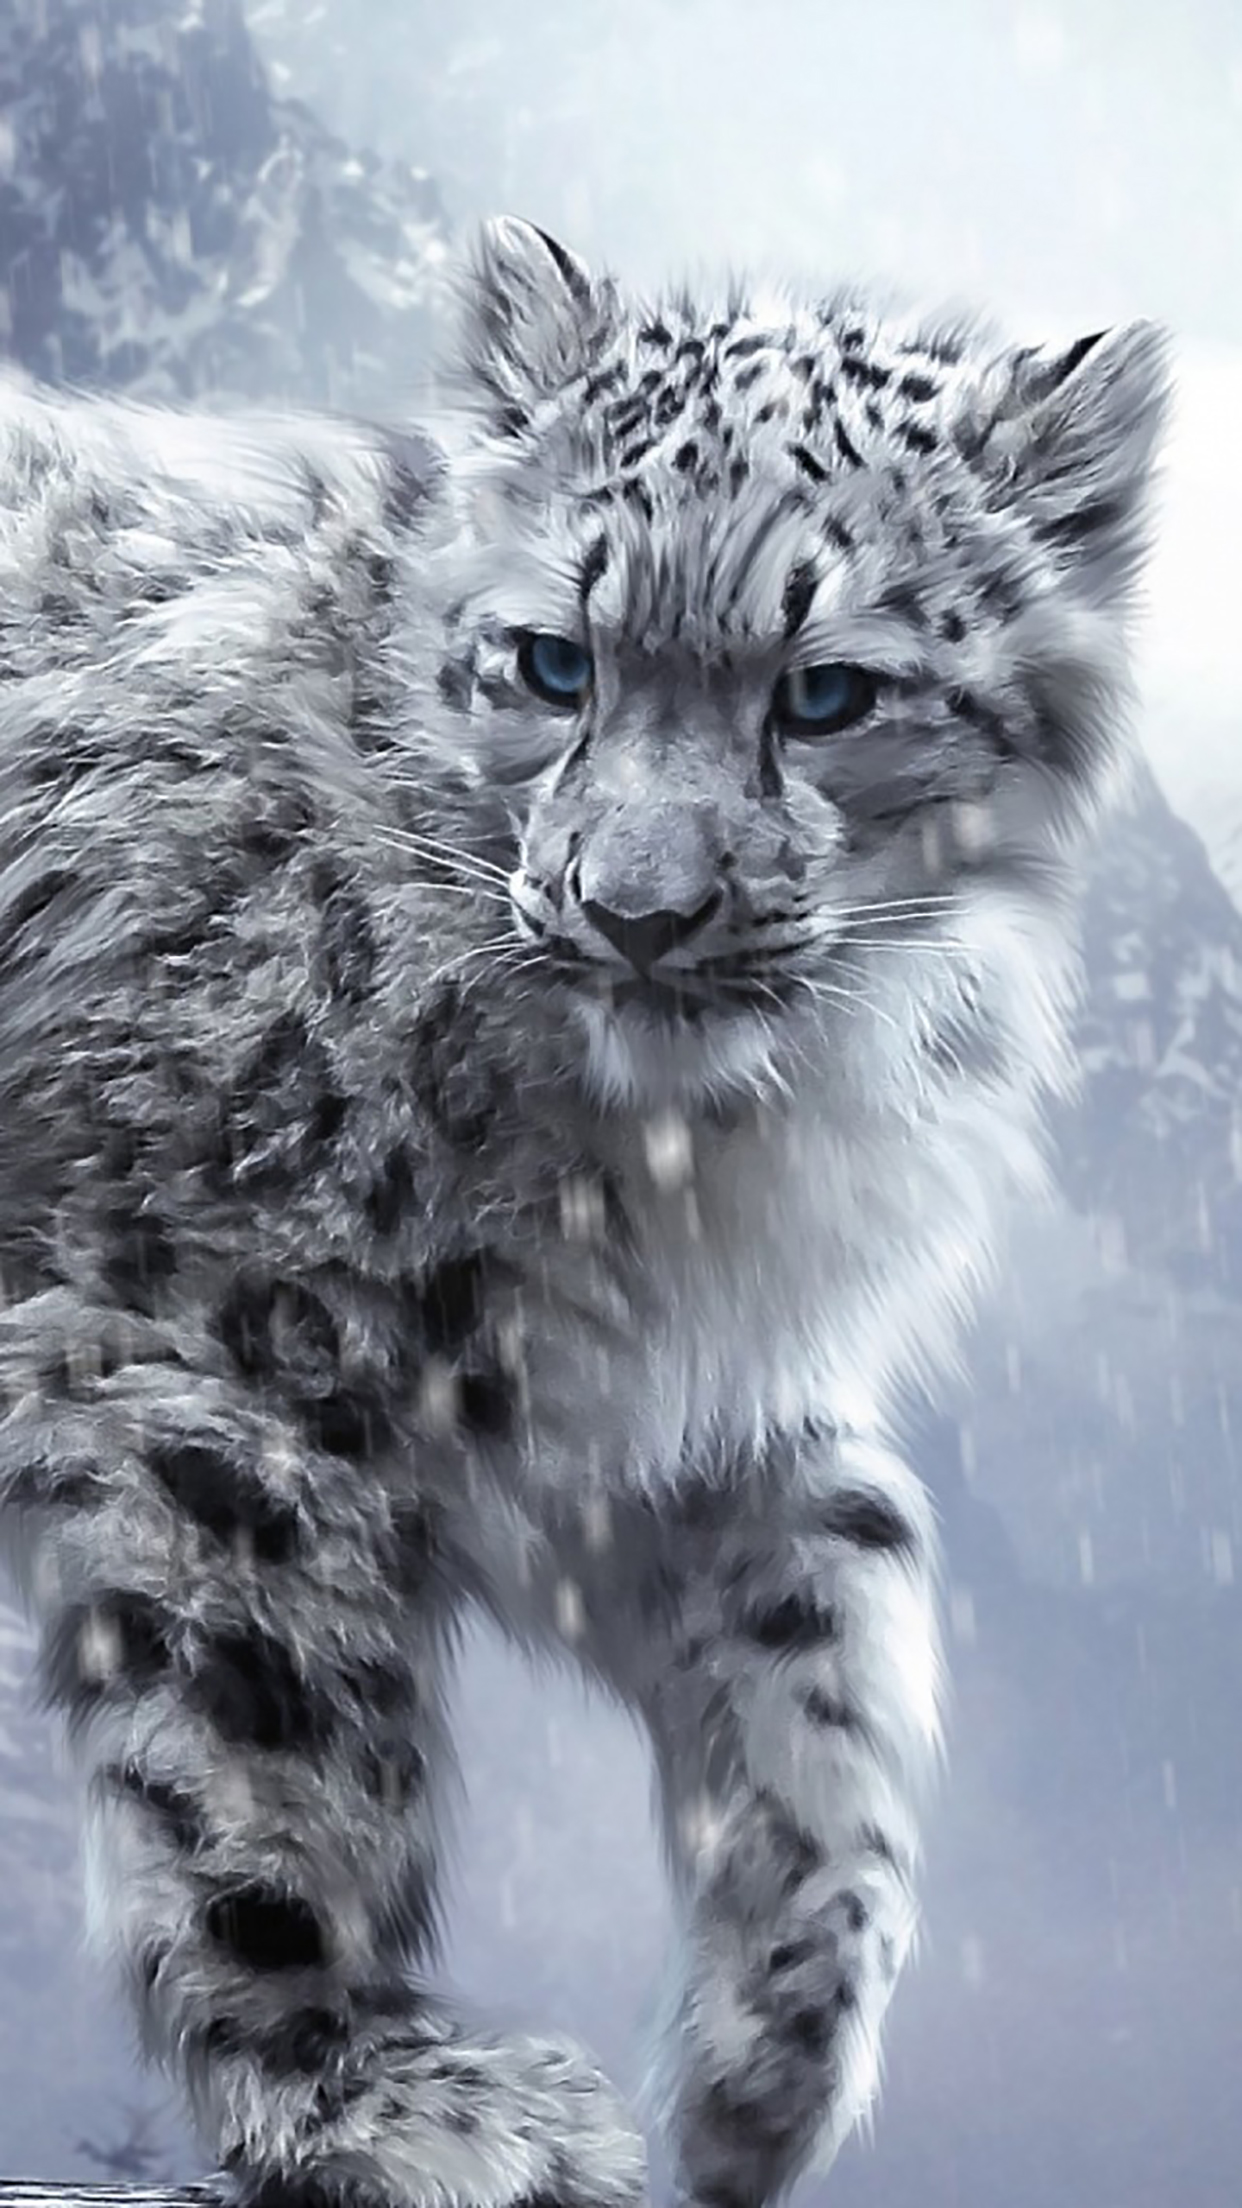 Snow animals leopard 3Wallpapers iPhone Parallax Snow animals leopard